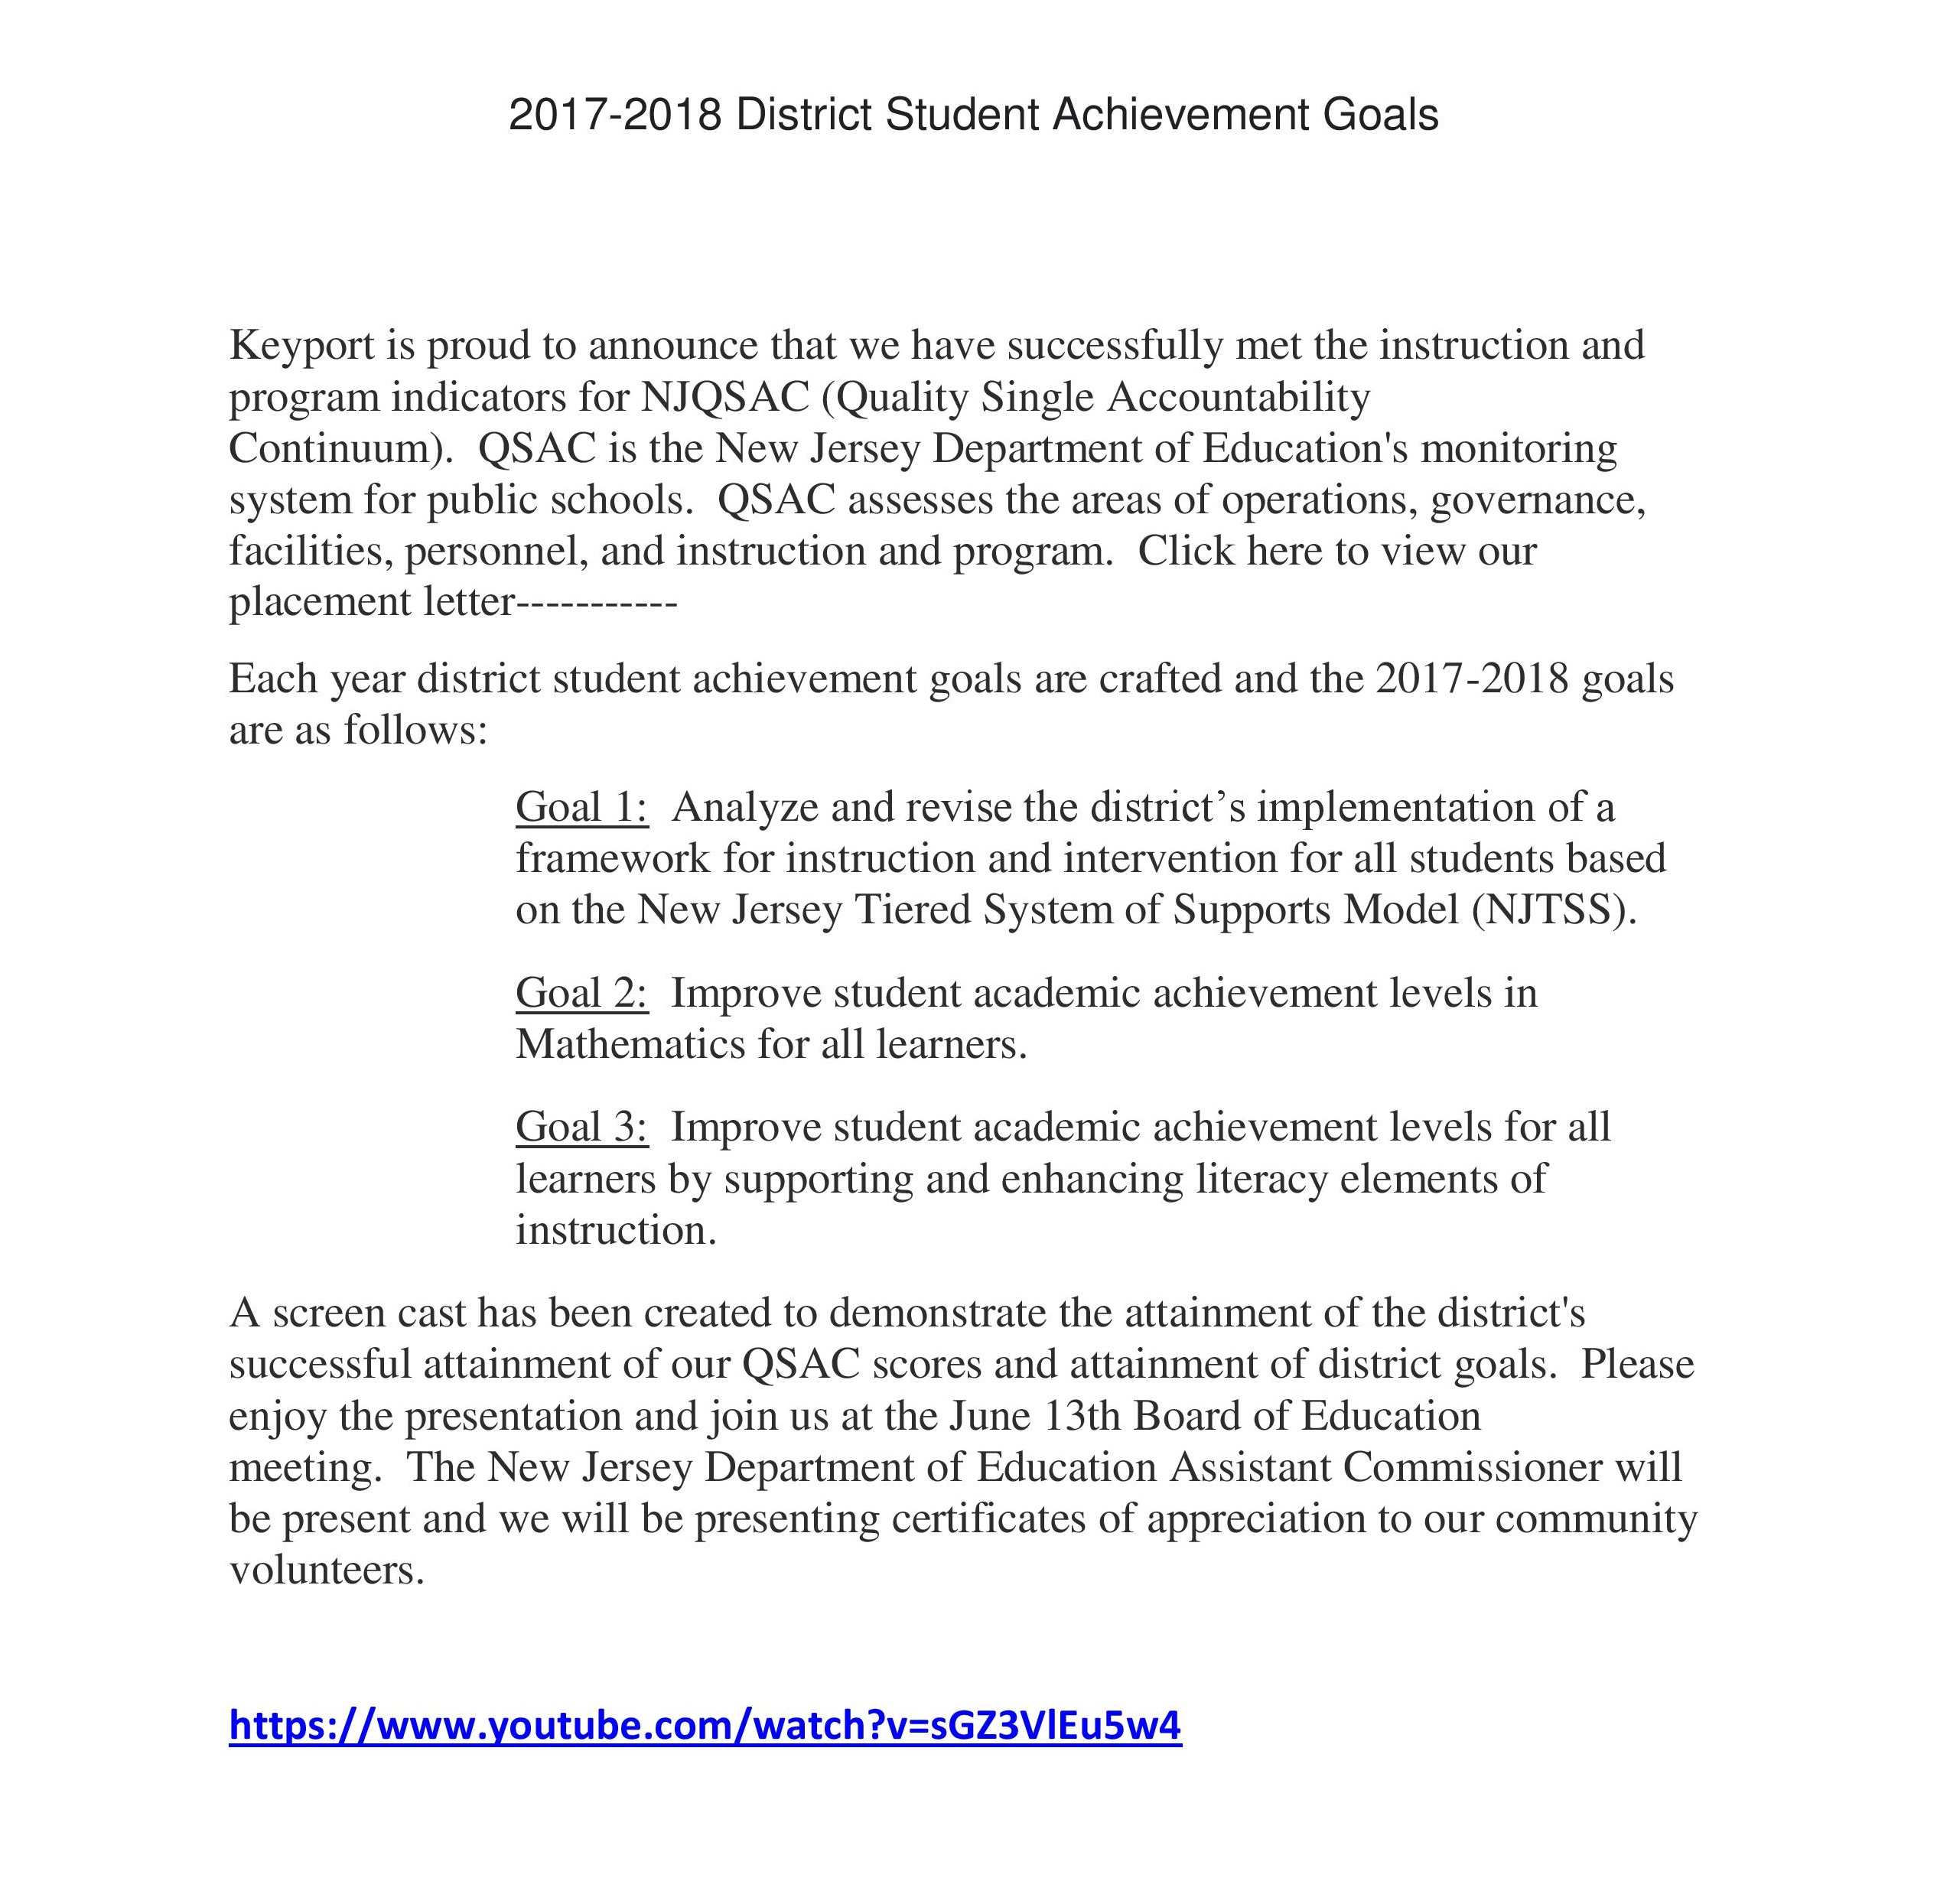 2017-2018 District Student Achievement Goals